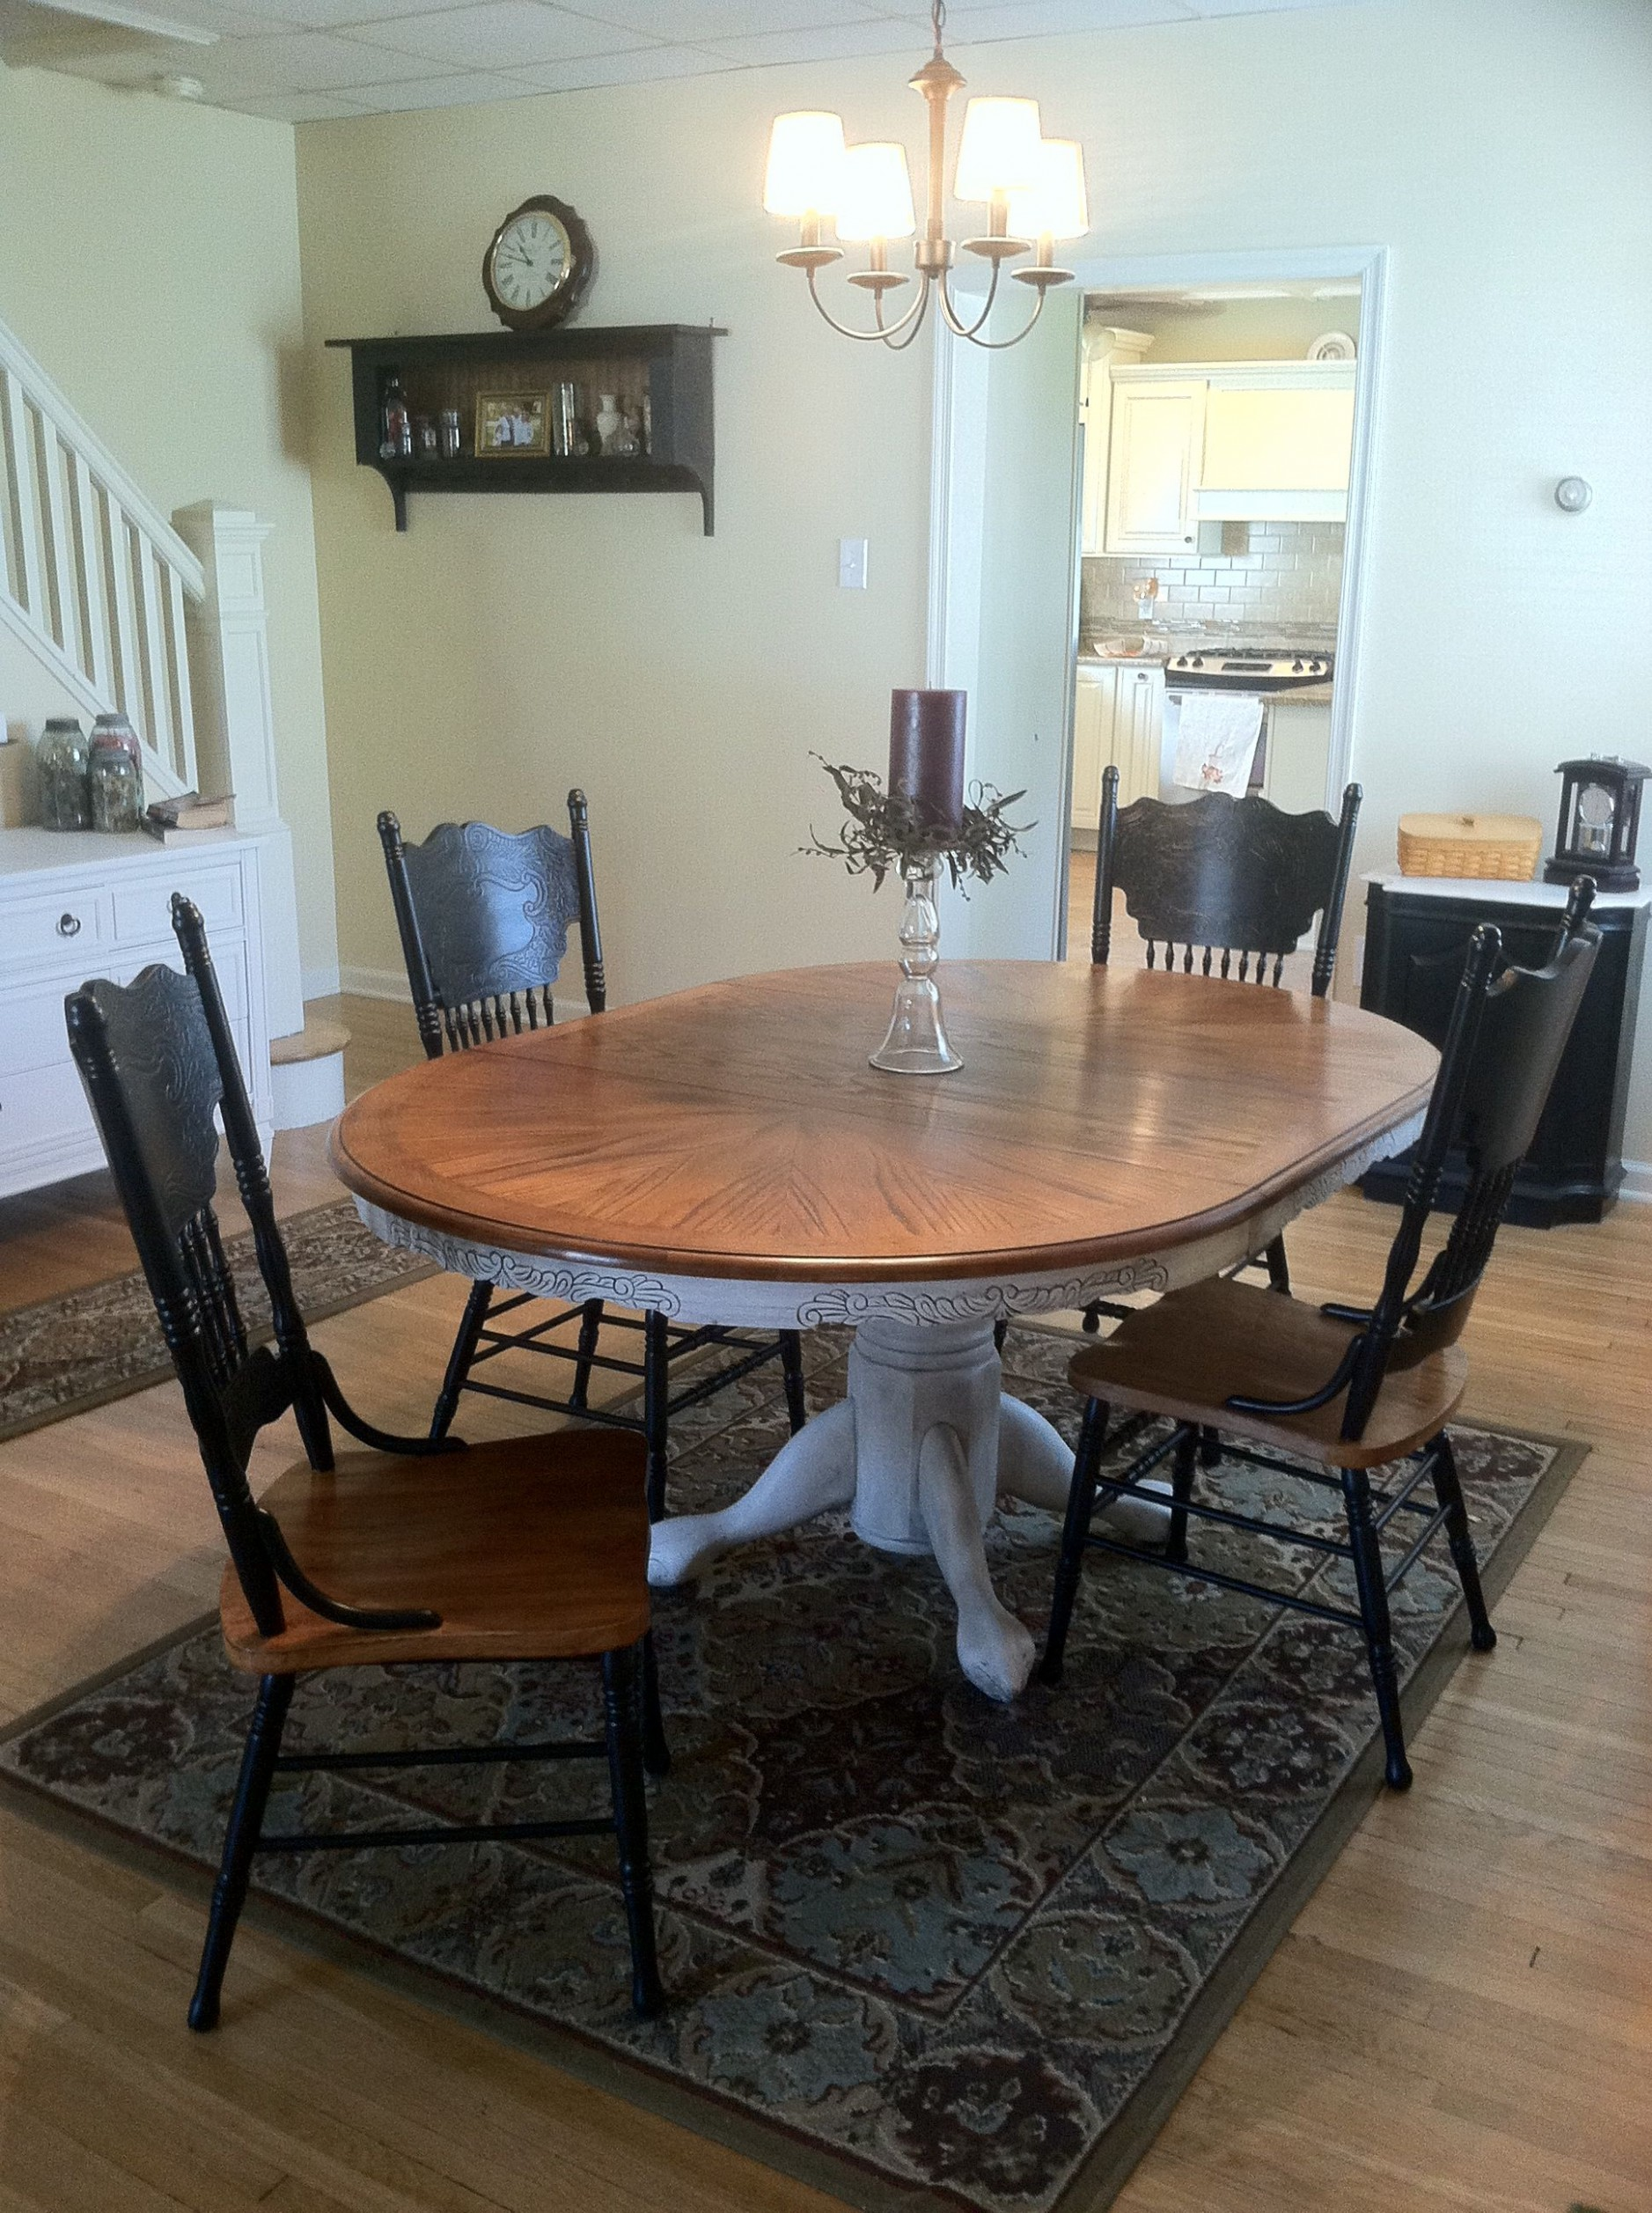 Pressback table and chairs redo